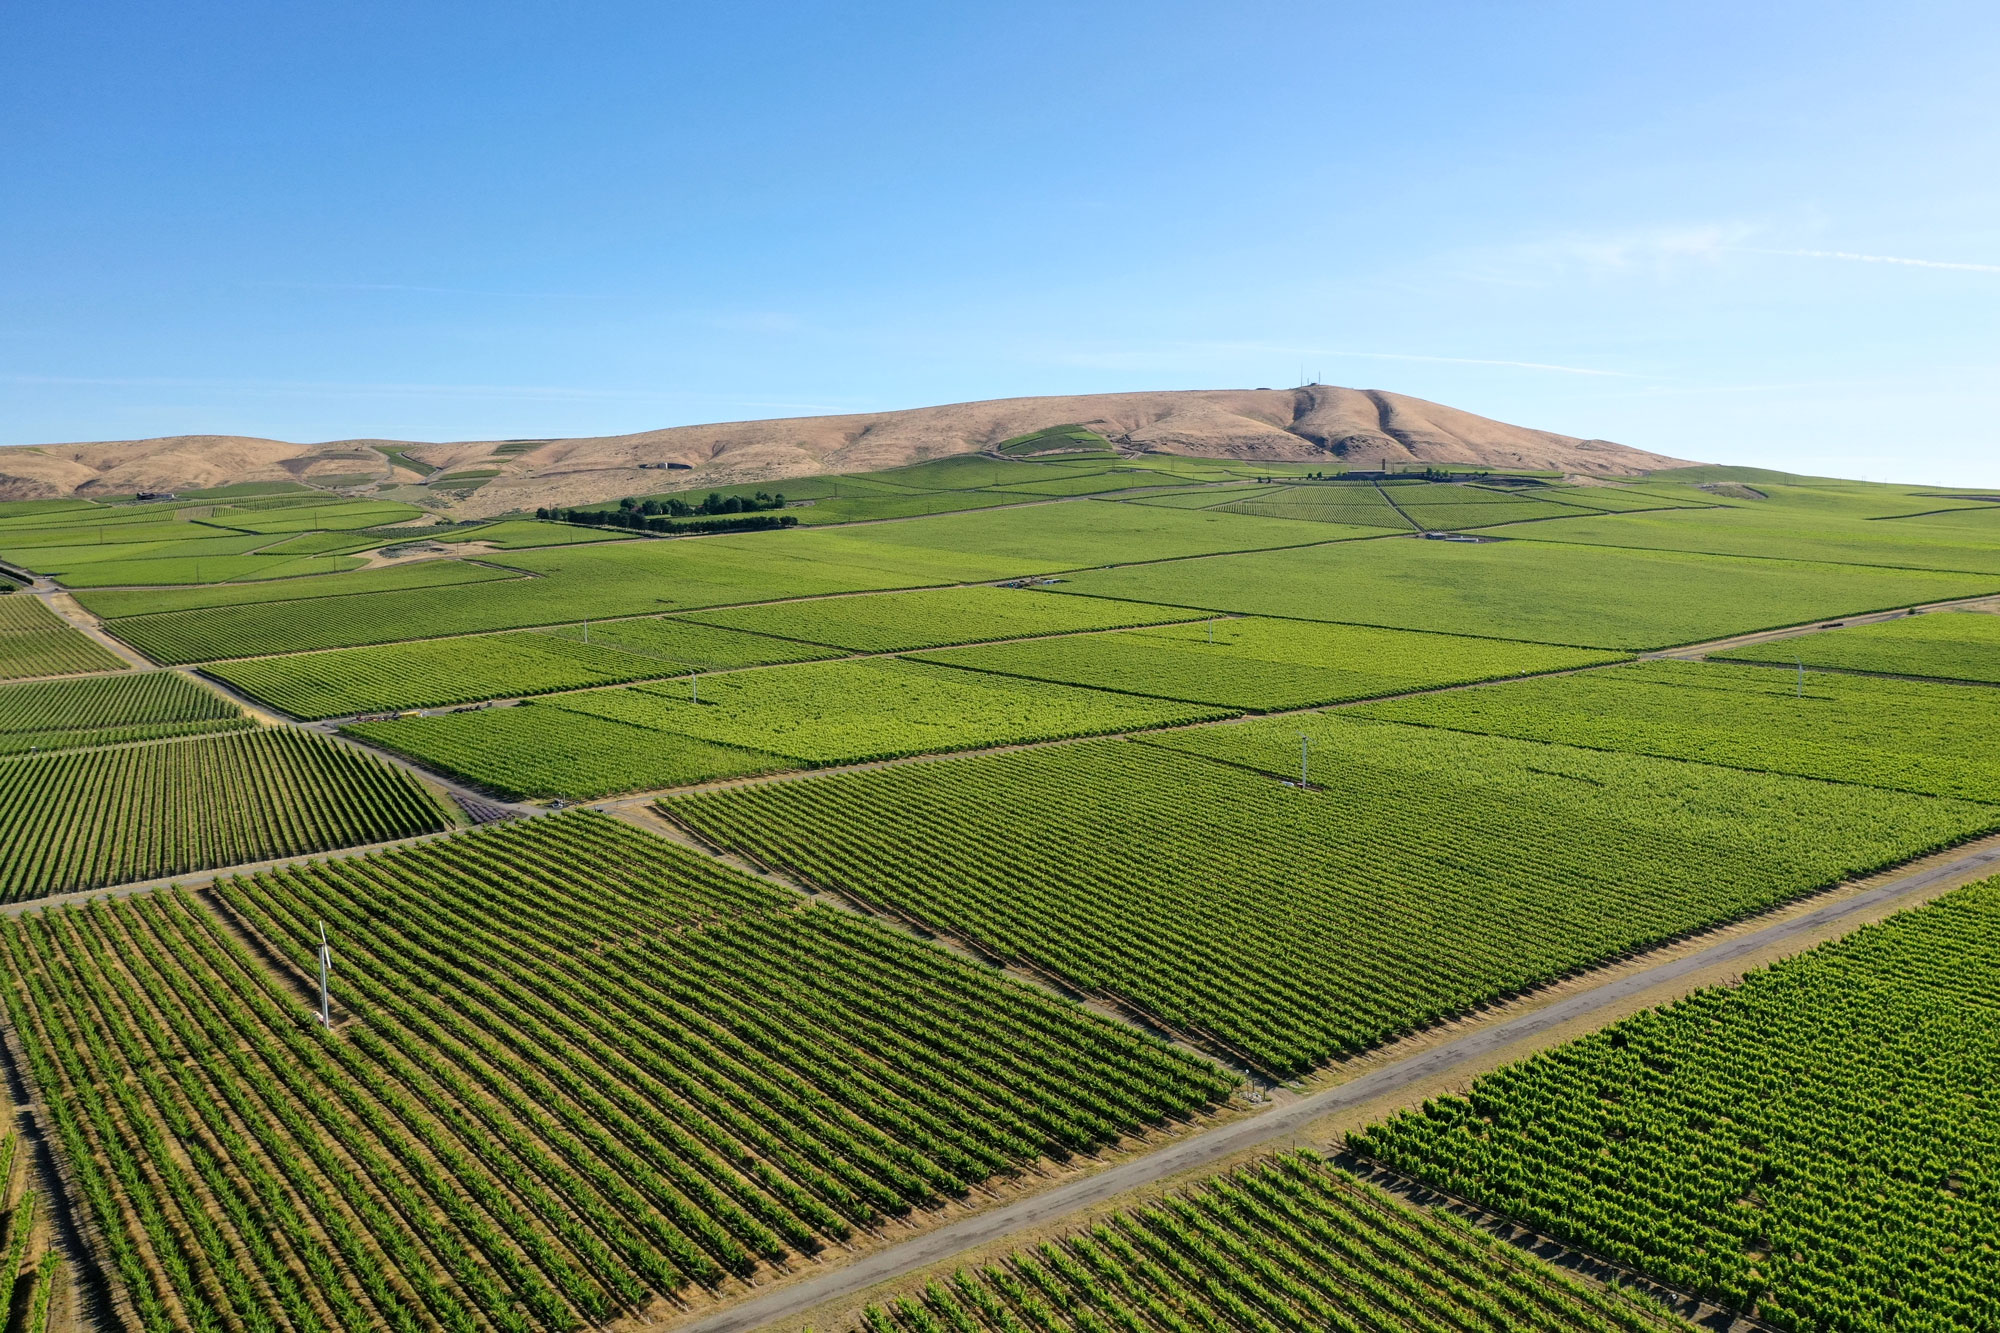 Red Mountain, Washington state vineyards from the air